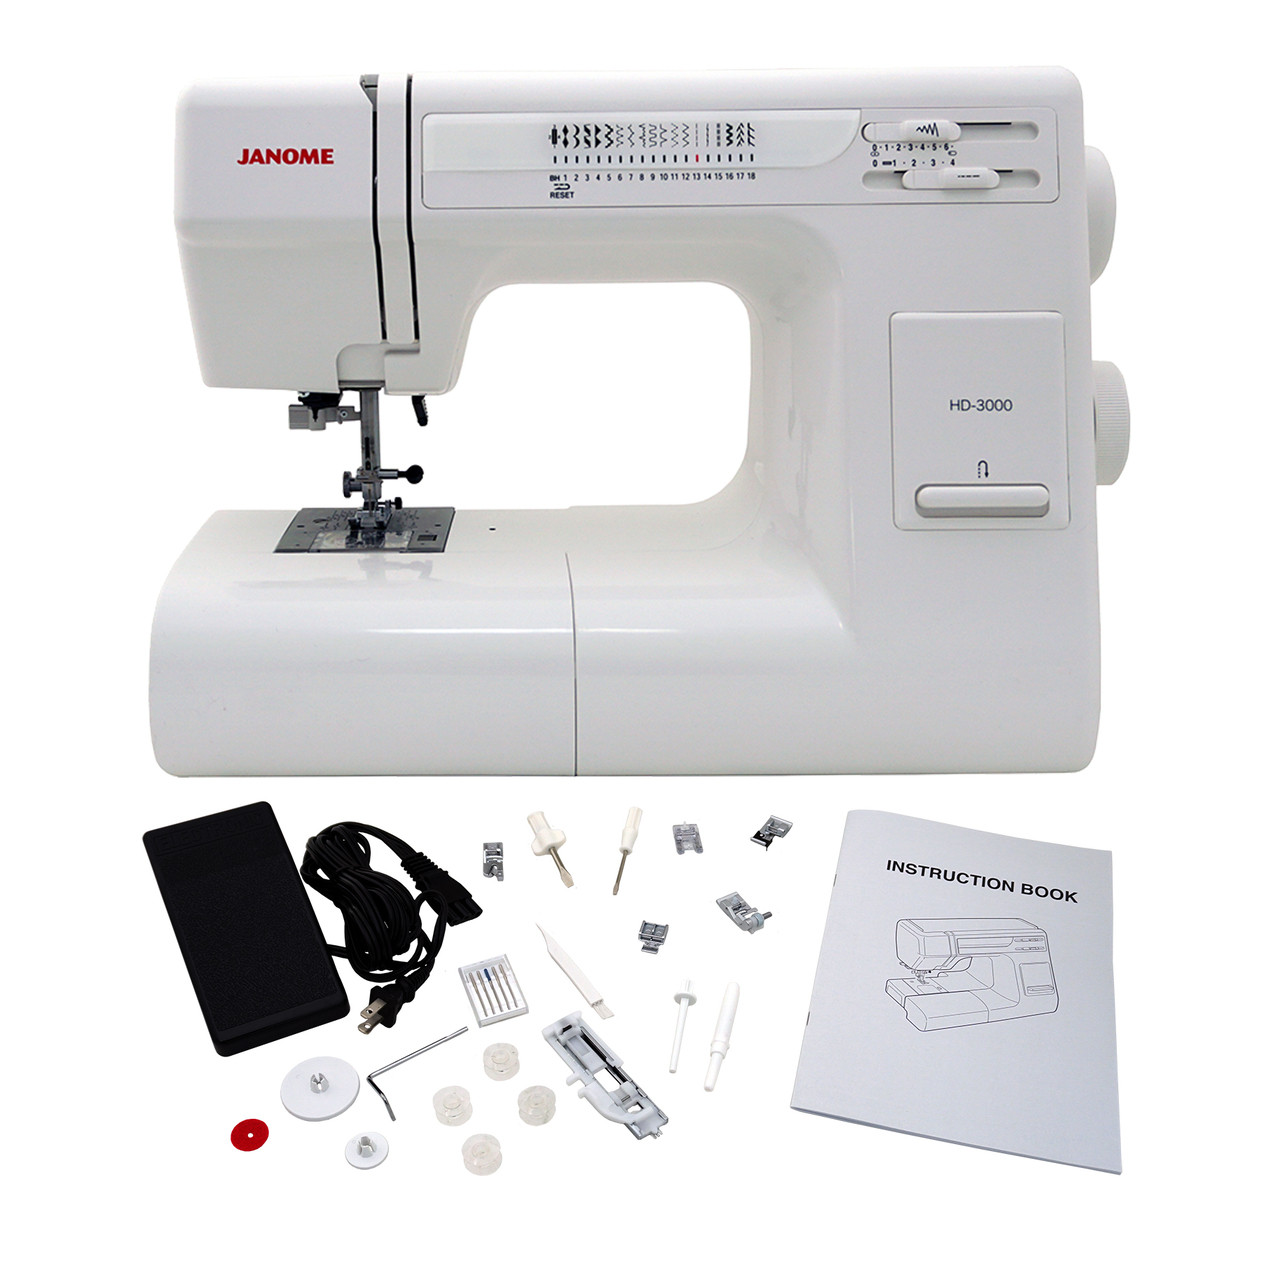 Janome hd3000 sewing machine with exclusive bonus bundle for Janome hd3000